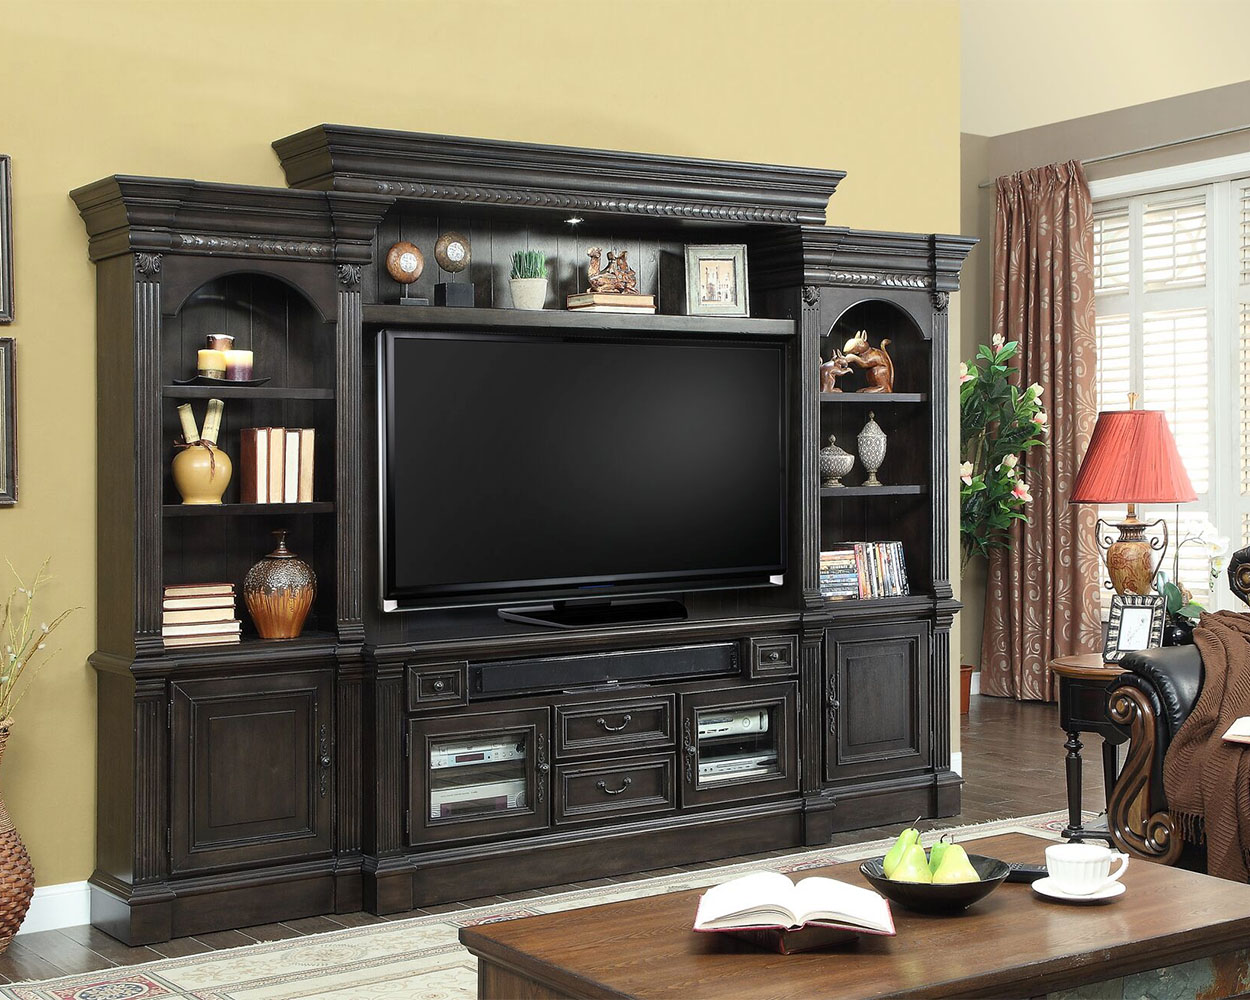 Entertainment Units Online Parker House Tv Entertainment Center Wall Unit Fairbanks